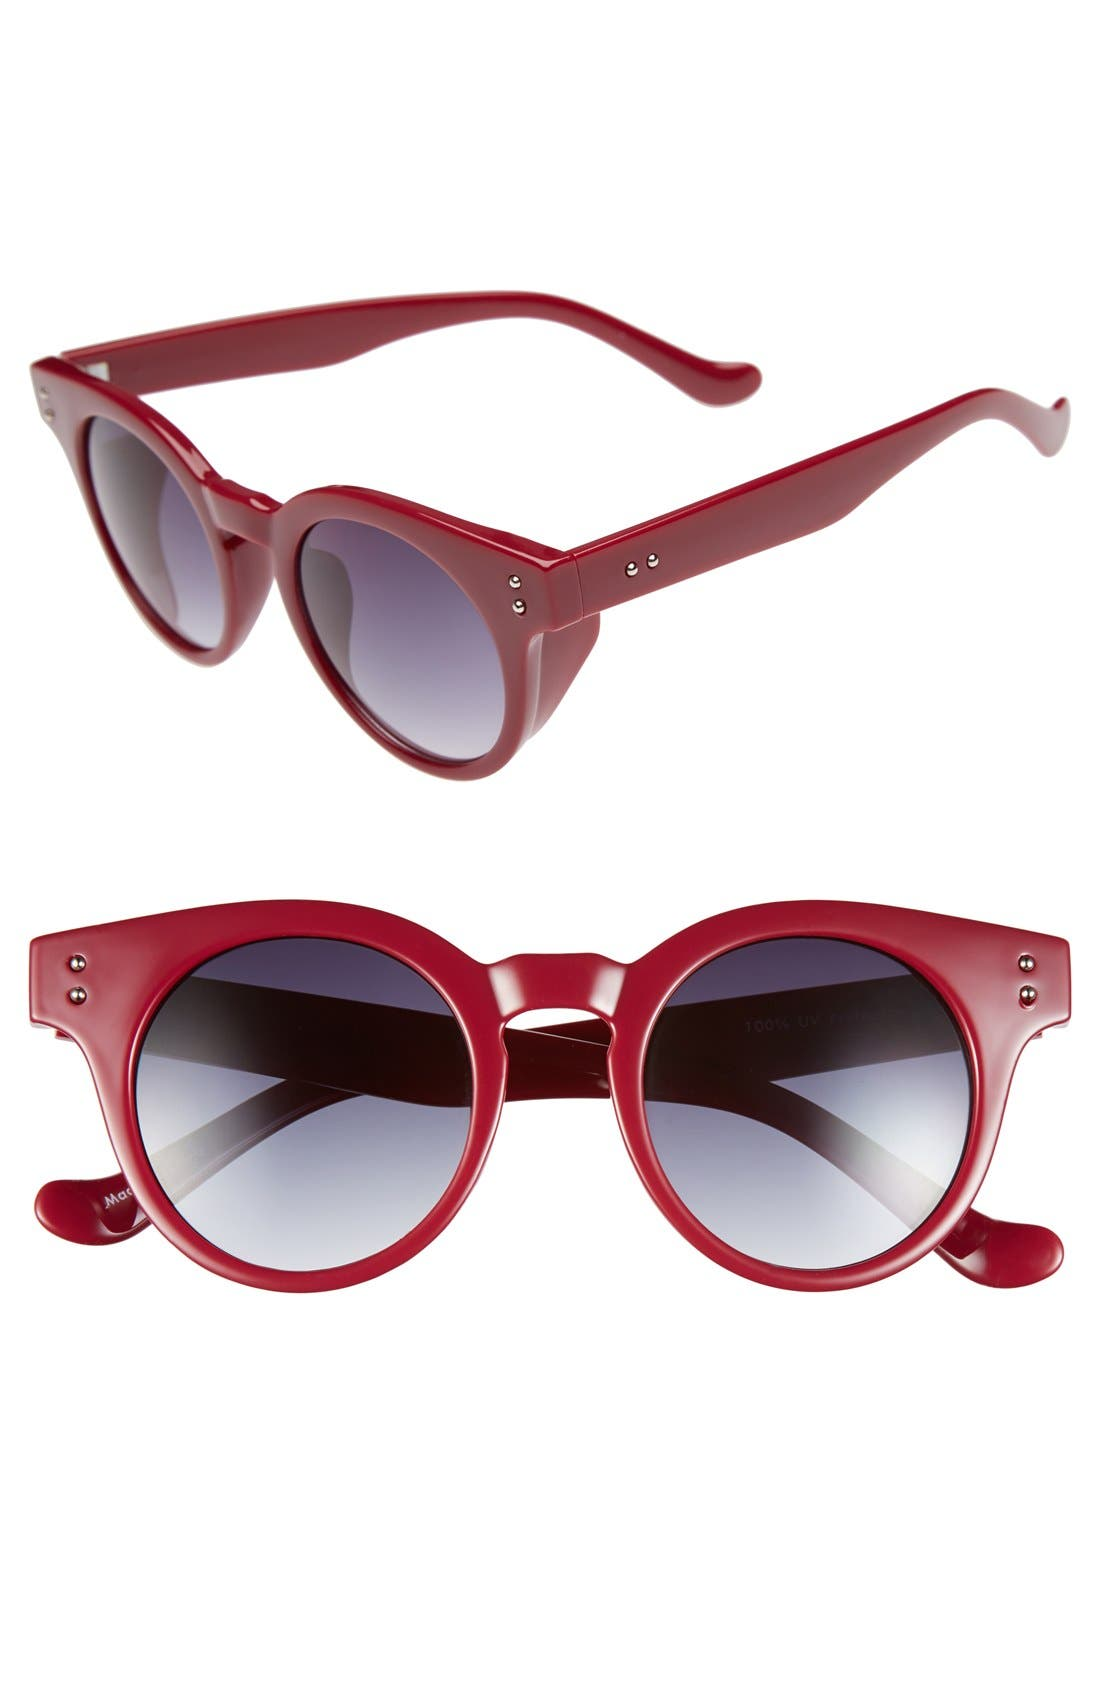 Main Image - FE NY 45mm Round Retro Sunglasses